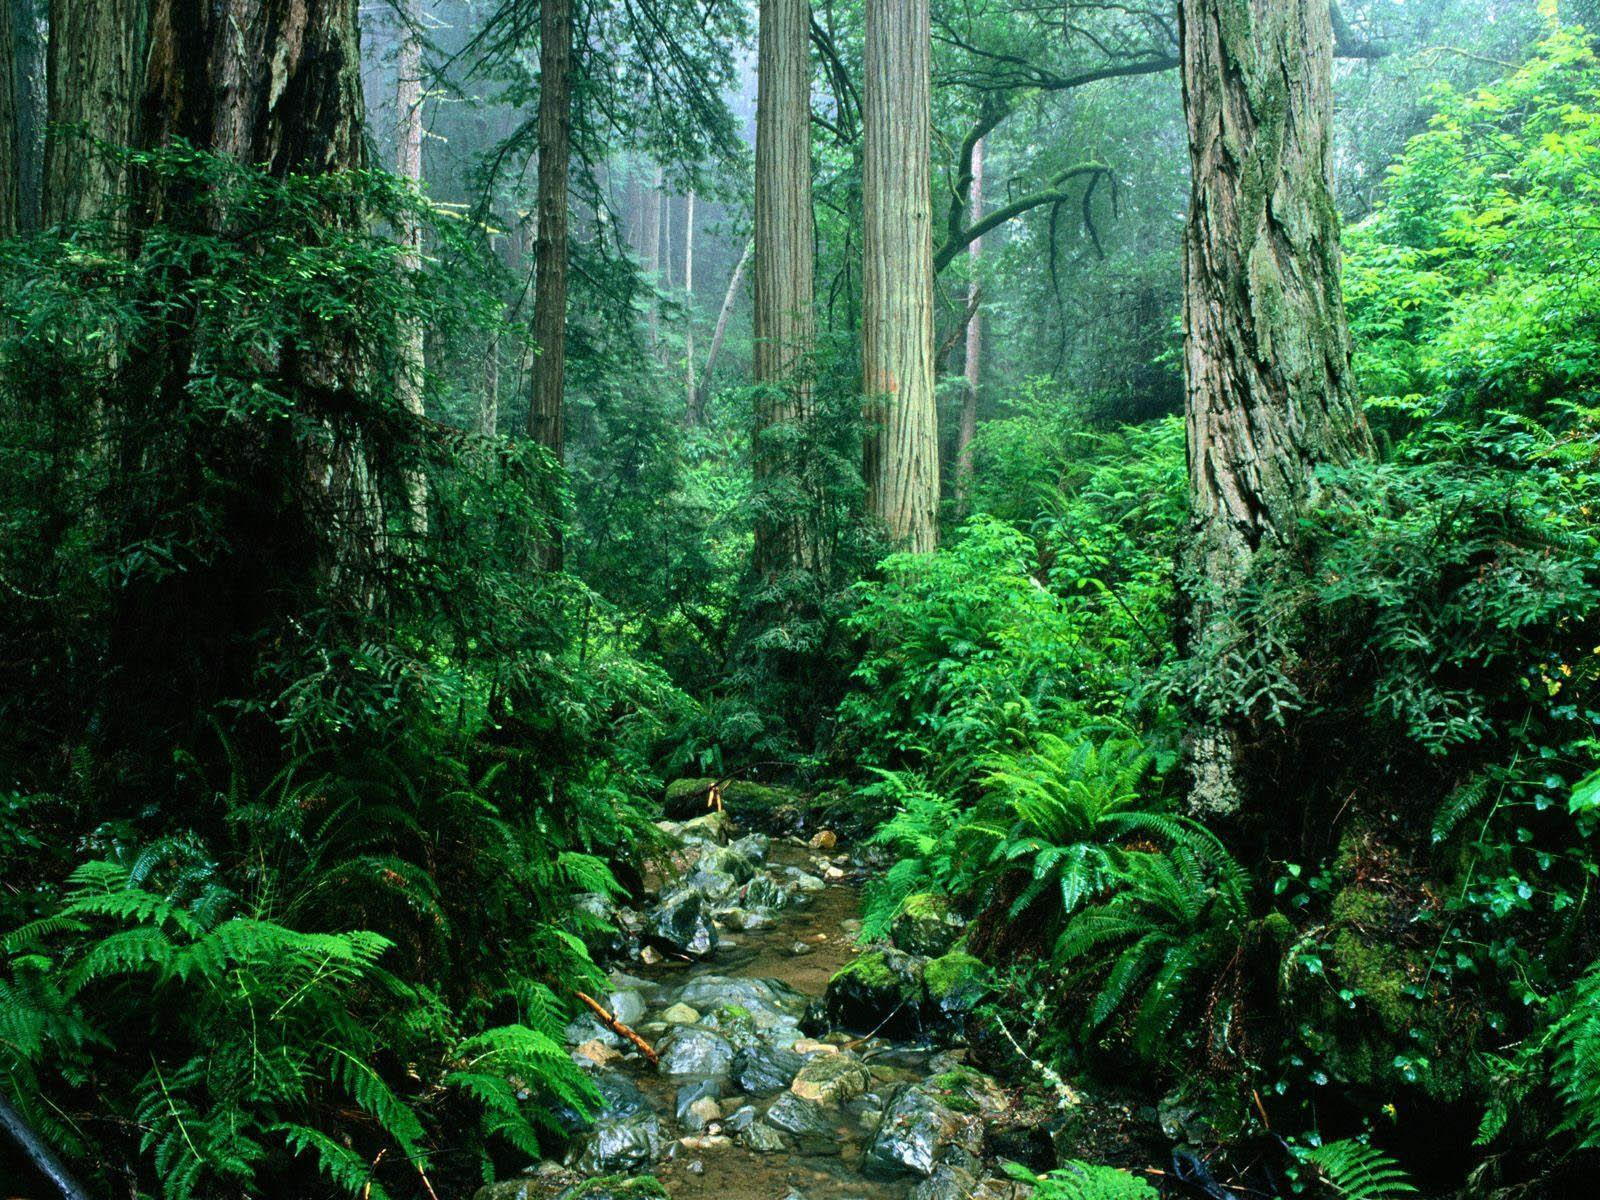 Image For > Amazon Rainforest Wallpapers Hd